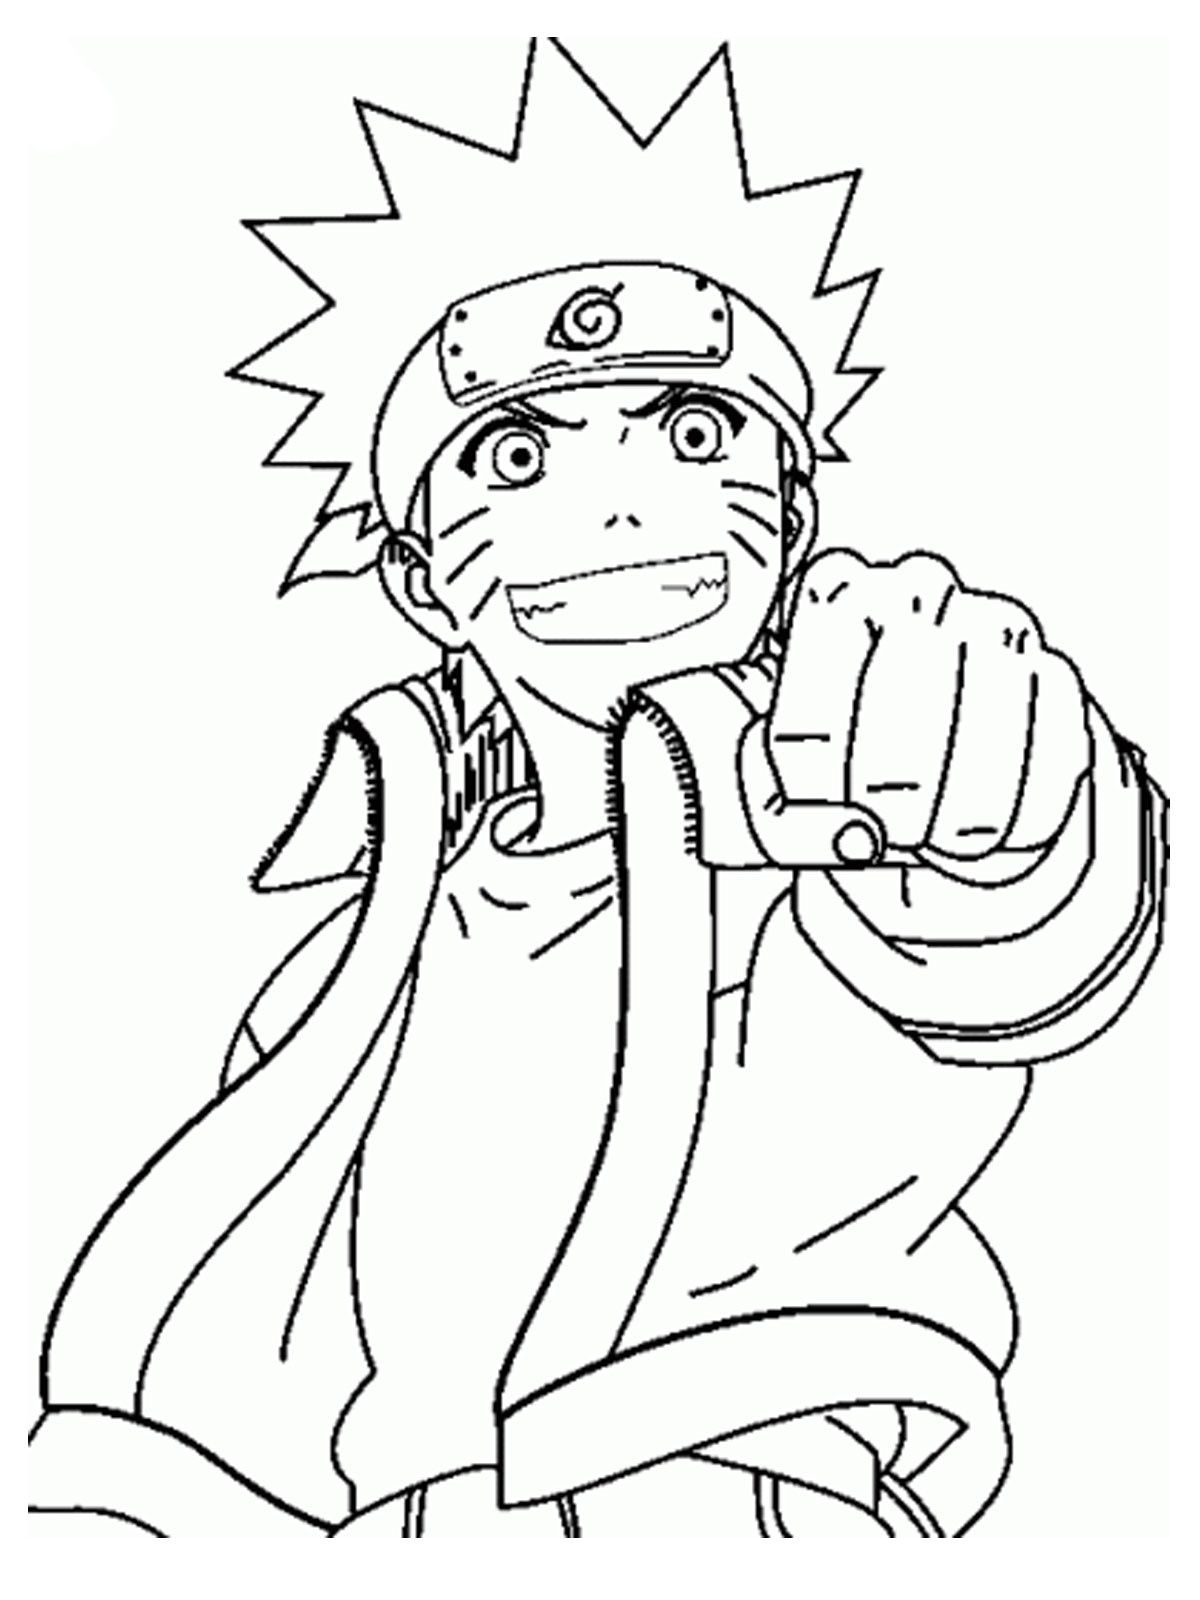 Coloring Pages Of Naruto - Best Image Coloring Page